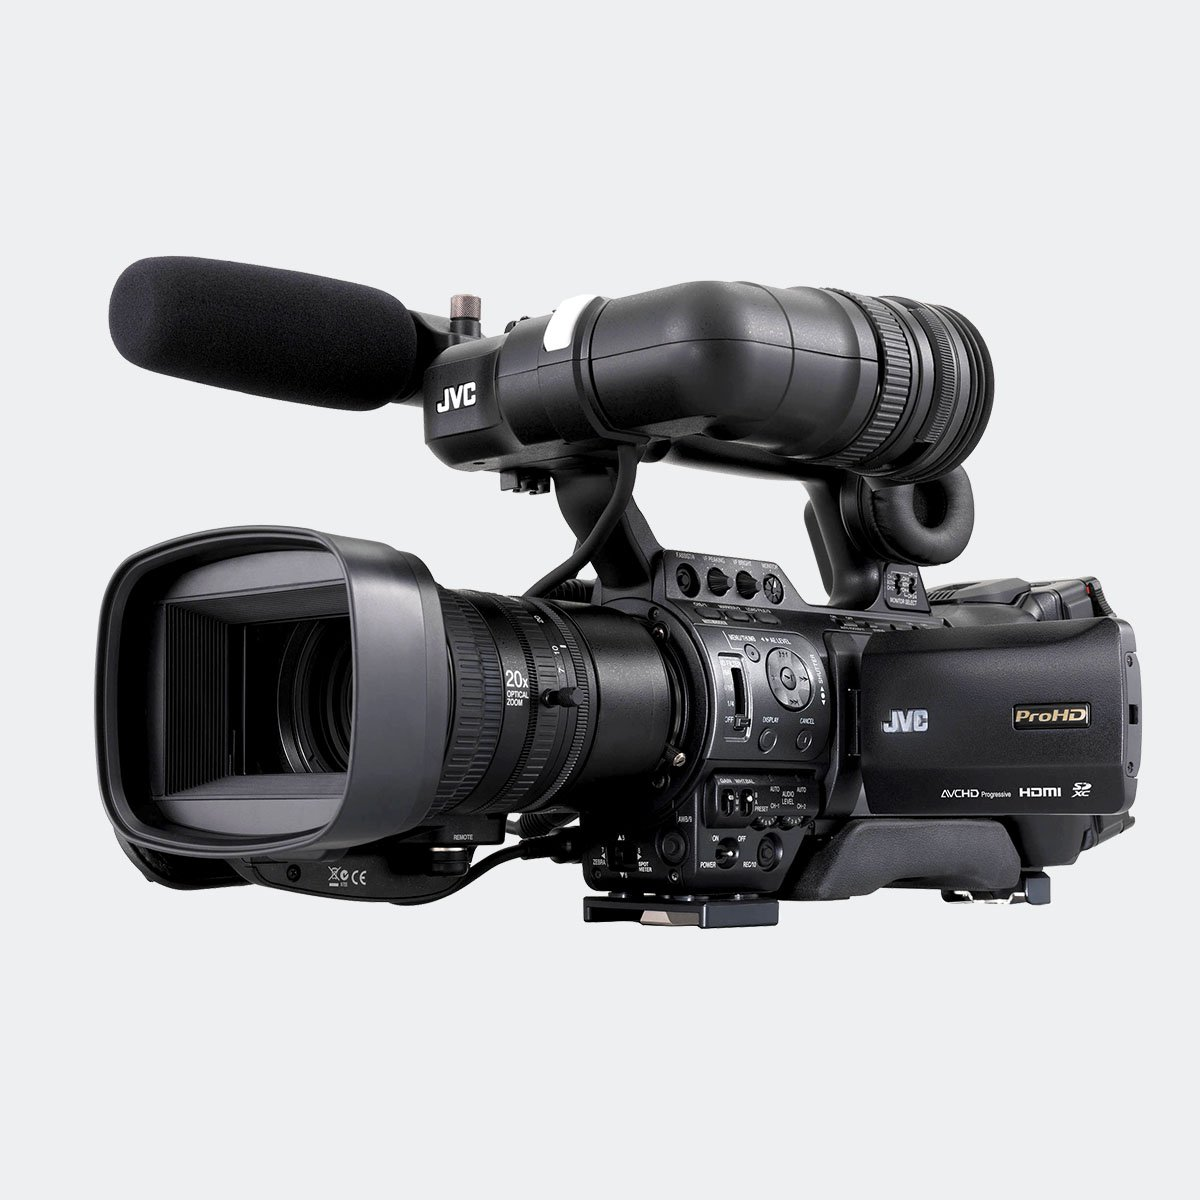 JVC GY-HM850RE live streaming ENG HD camcorder